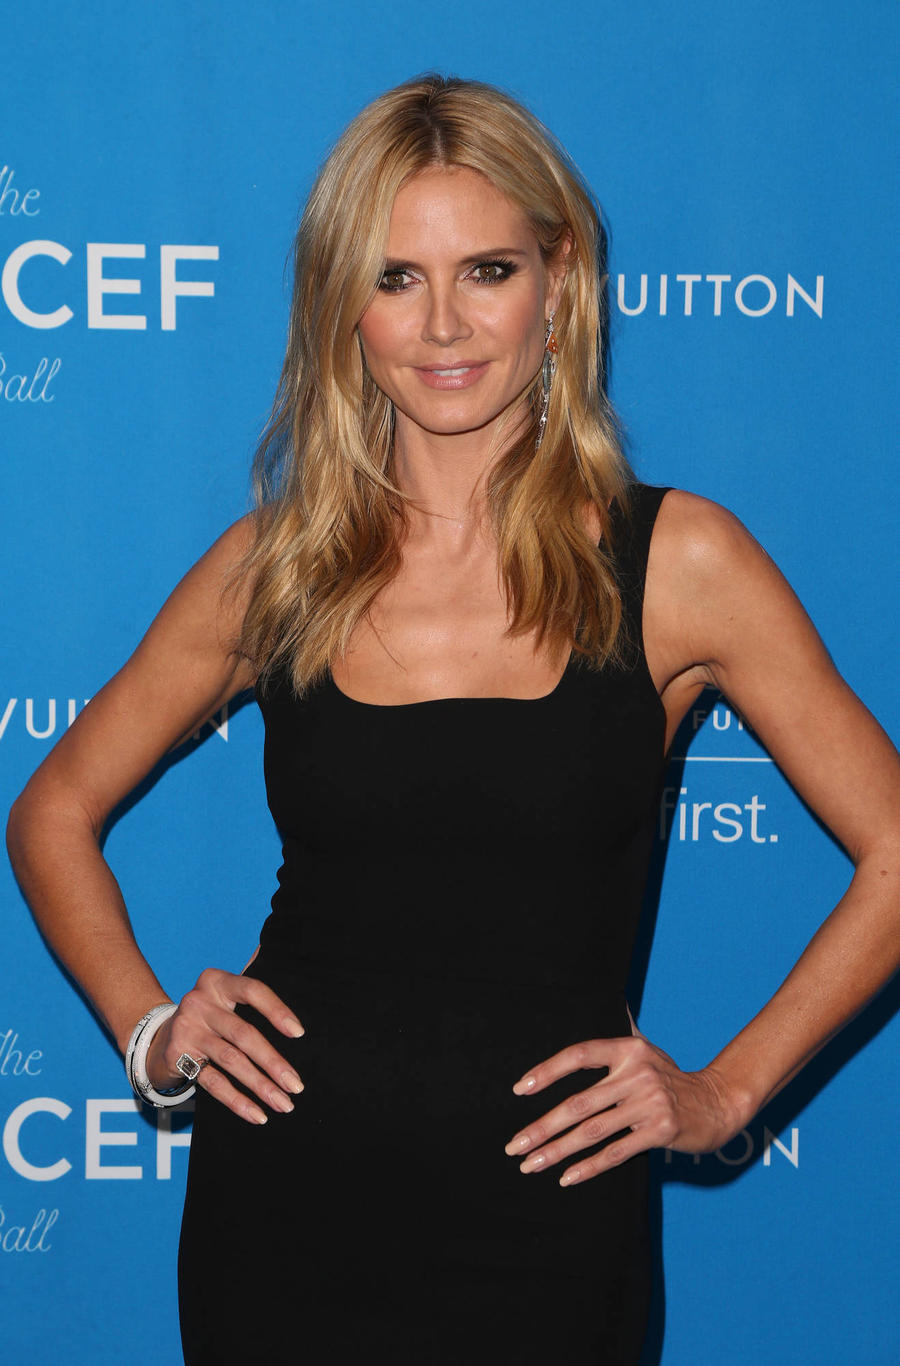 Heidi Klum Was Too Busy For Zoolander 2 Cameo